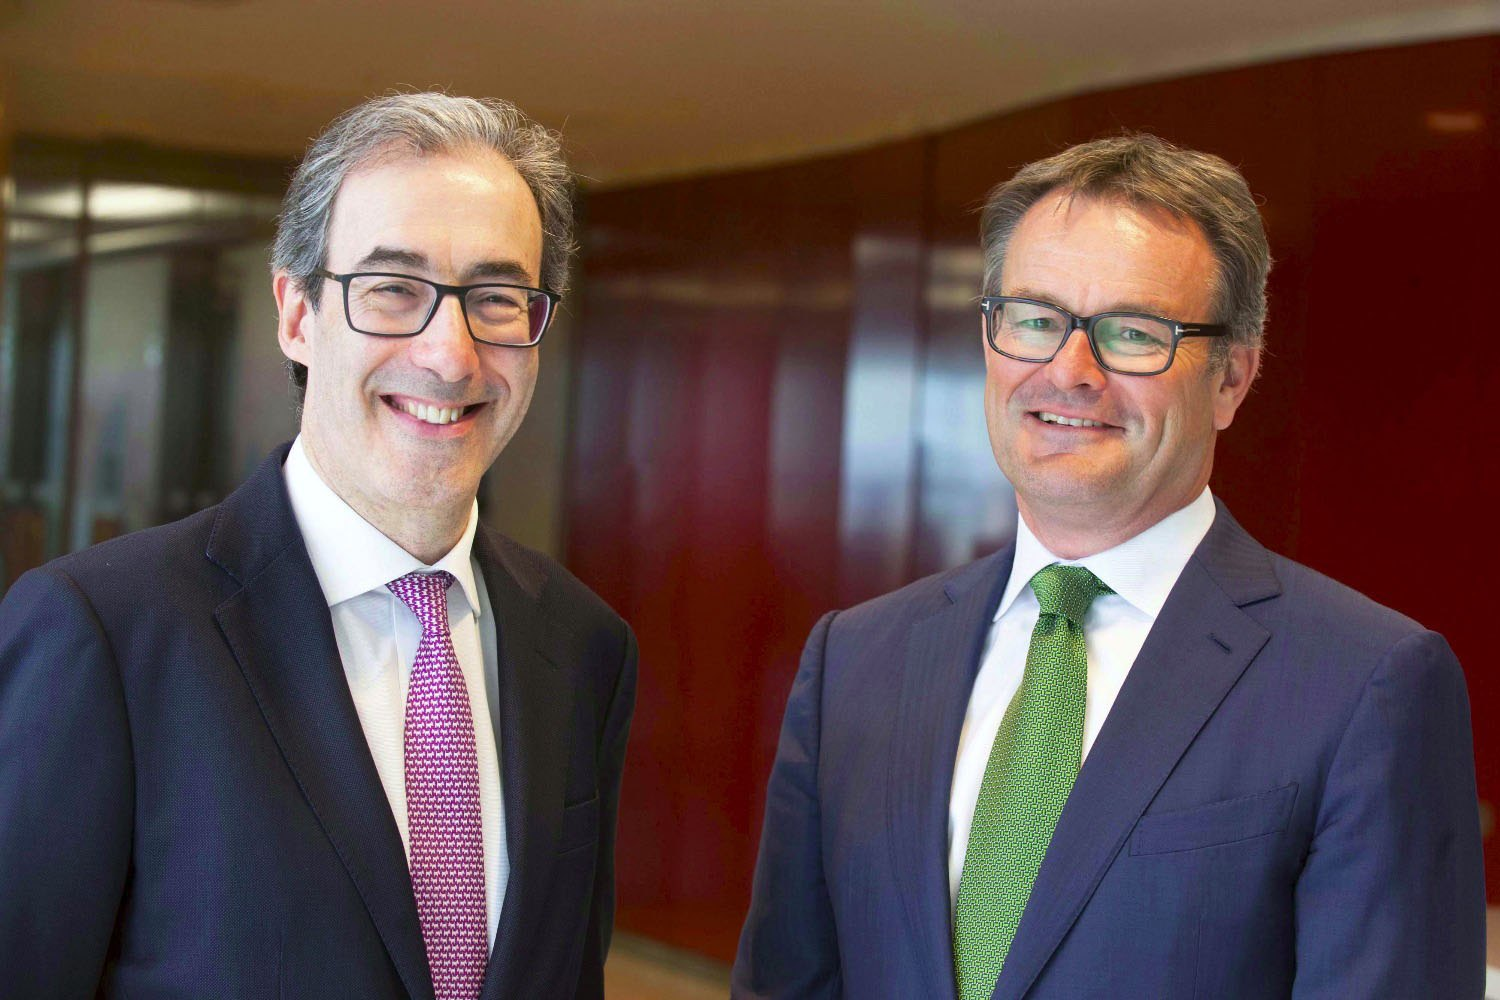 A&O set to expand flexible lawyer service across Europe and the US following Amsterdam pilot